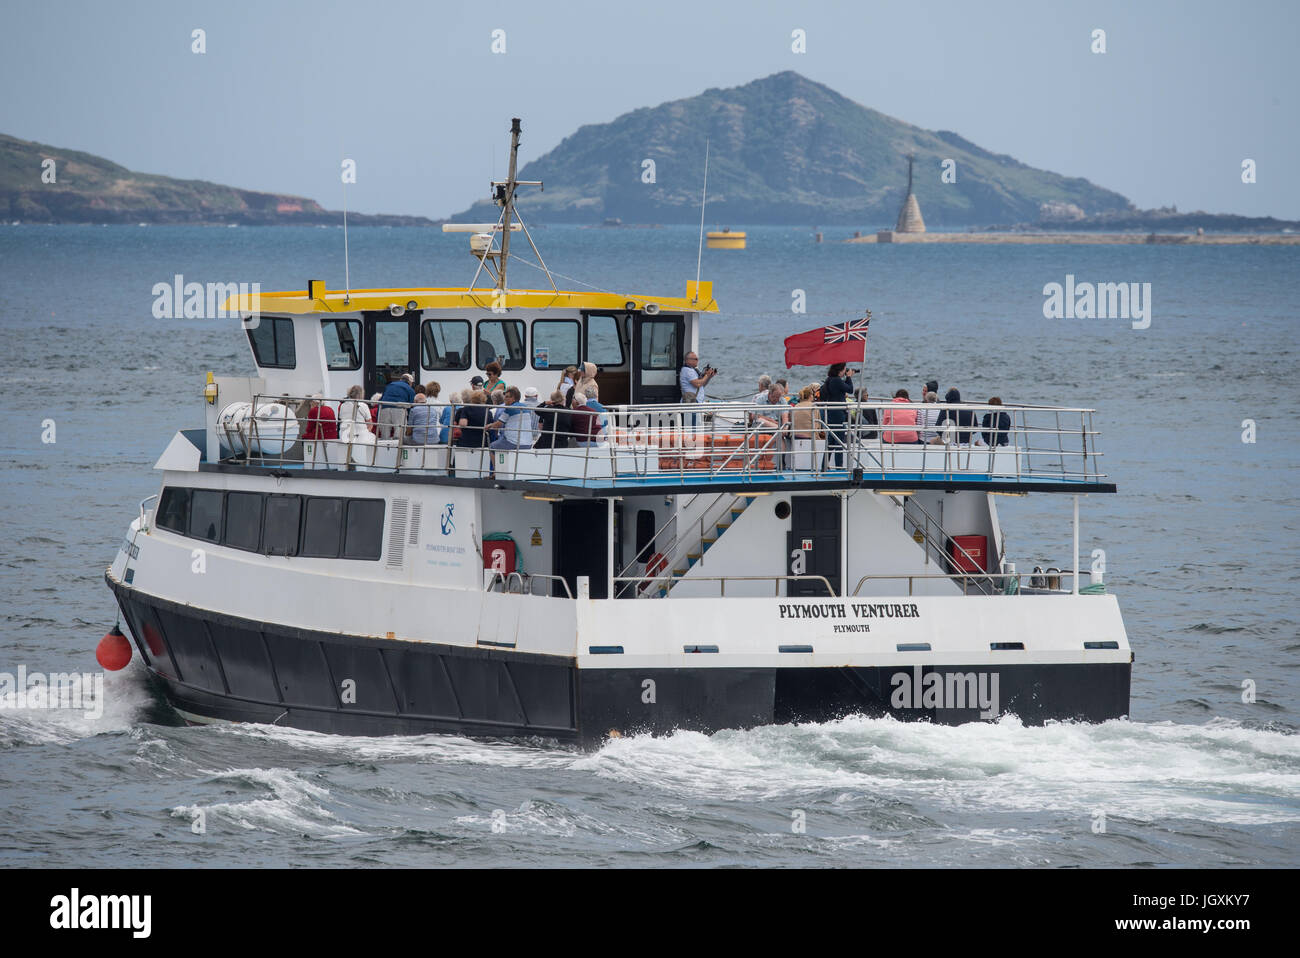 Plymouth Venturer  - Boat tours along the River Tamar and Plymouth Sound, Devon, UK - Pic by Paul Slater/PSI Ltd - Stock Image